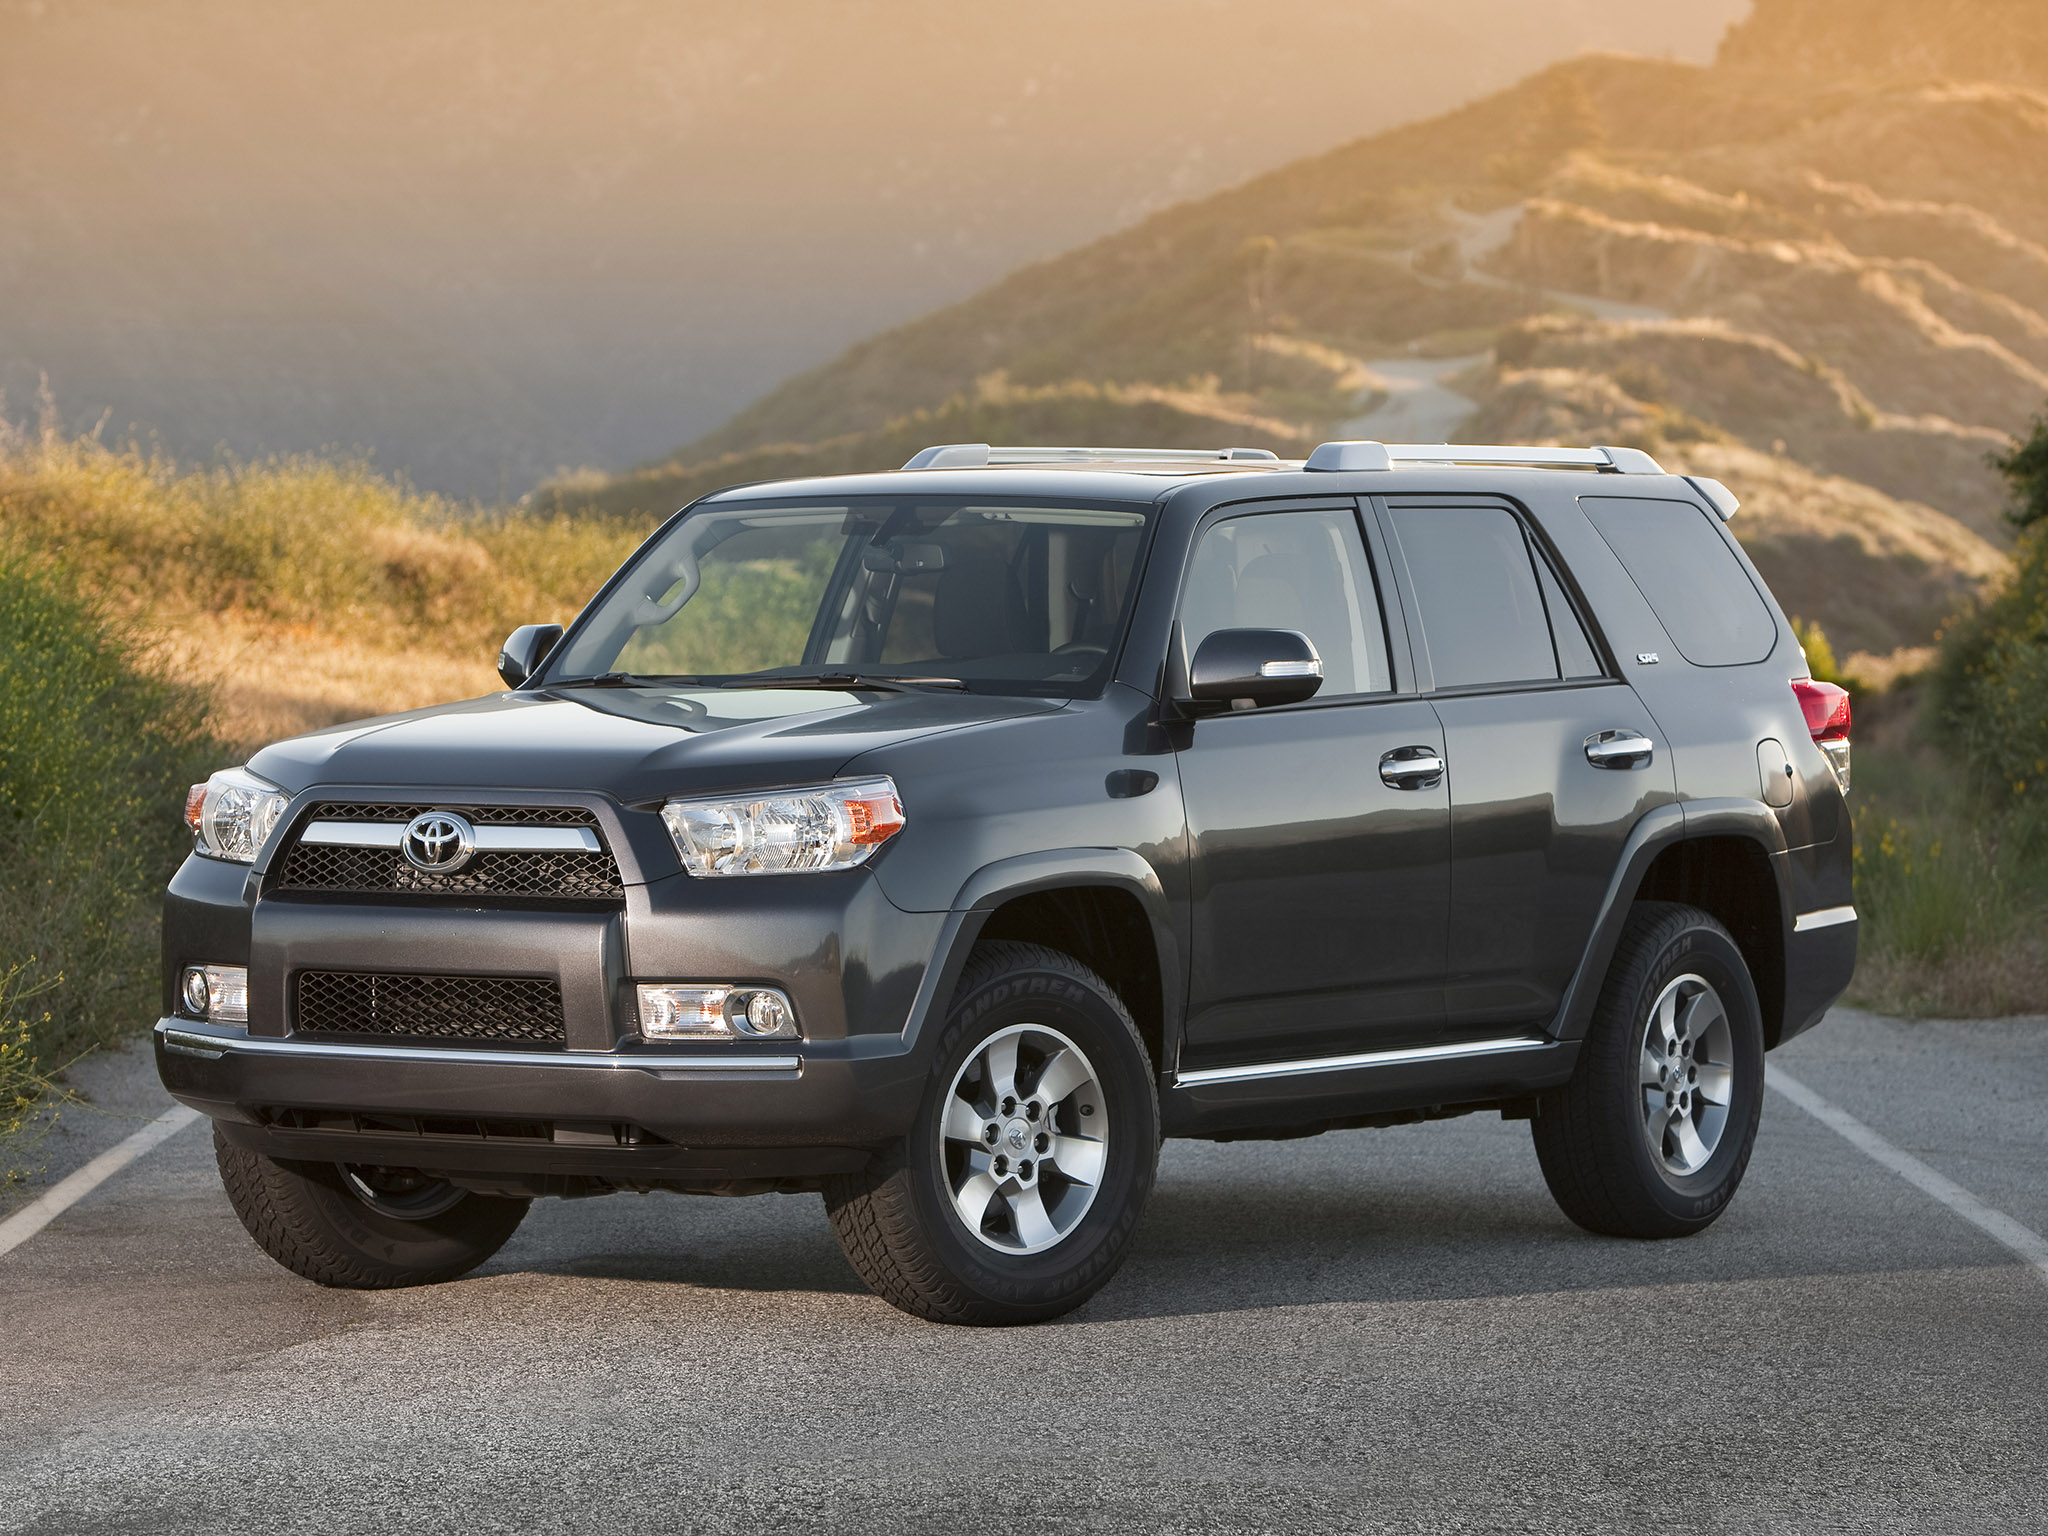 Toyota 4Runner SR5 2010 Wallpaper Download